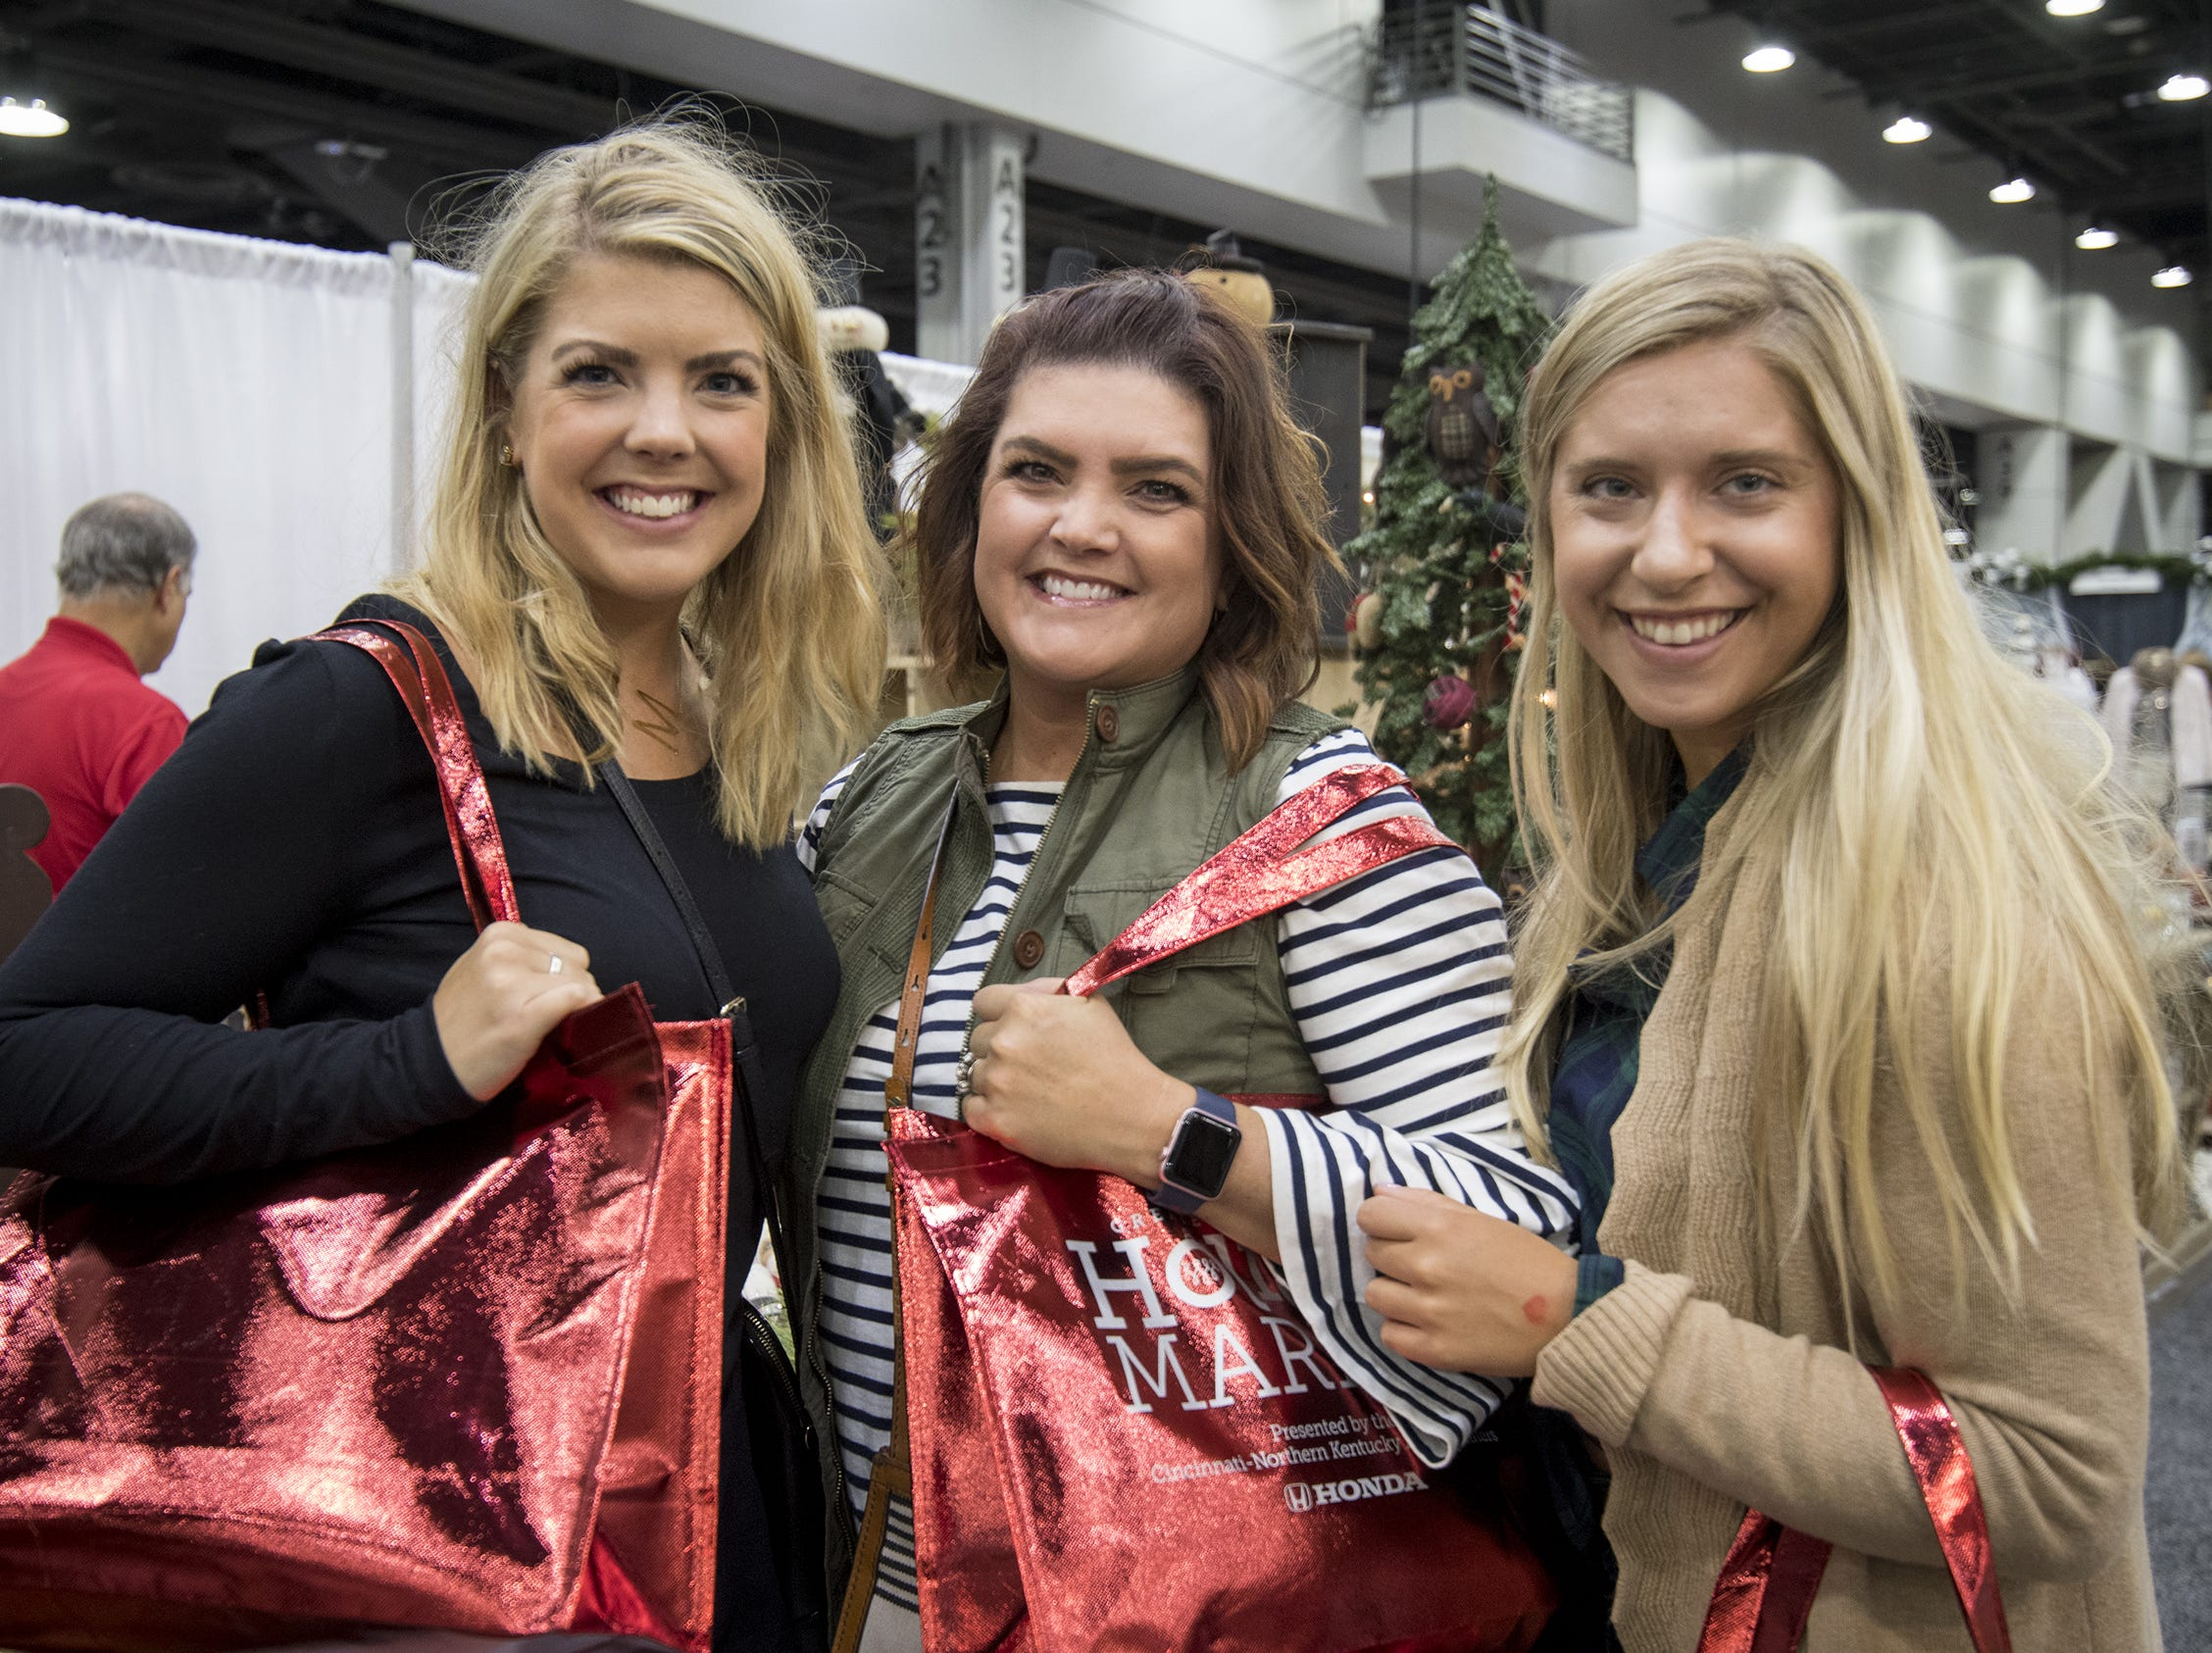 Mallory Webb, Jamie Webb and Molly Sellers take advantage of VIP entry during the Greater Cincinnati Holiday Market at the Duke Energy Center Friday, November 2, 2018 in Cincinnati, Ohio. The event runs through Sunday, November 4.